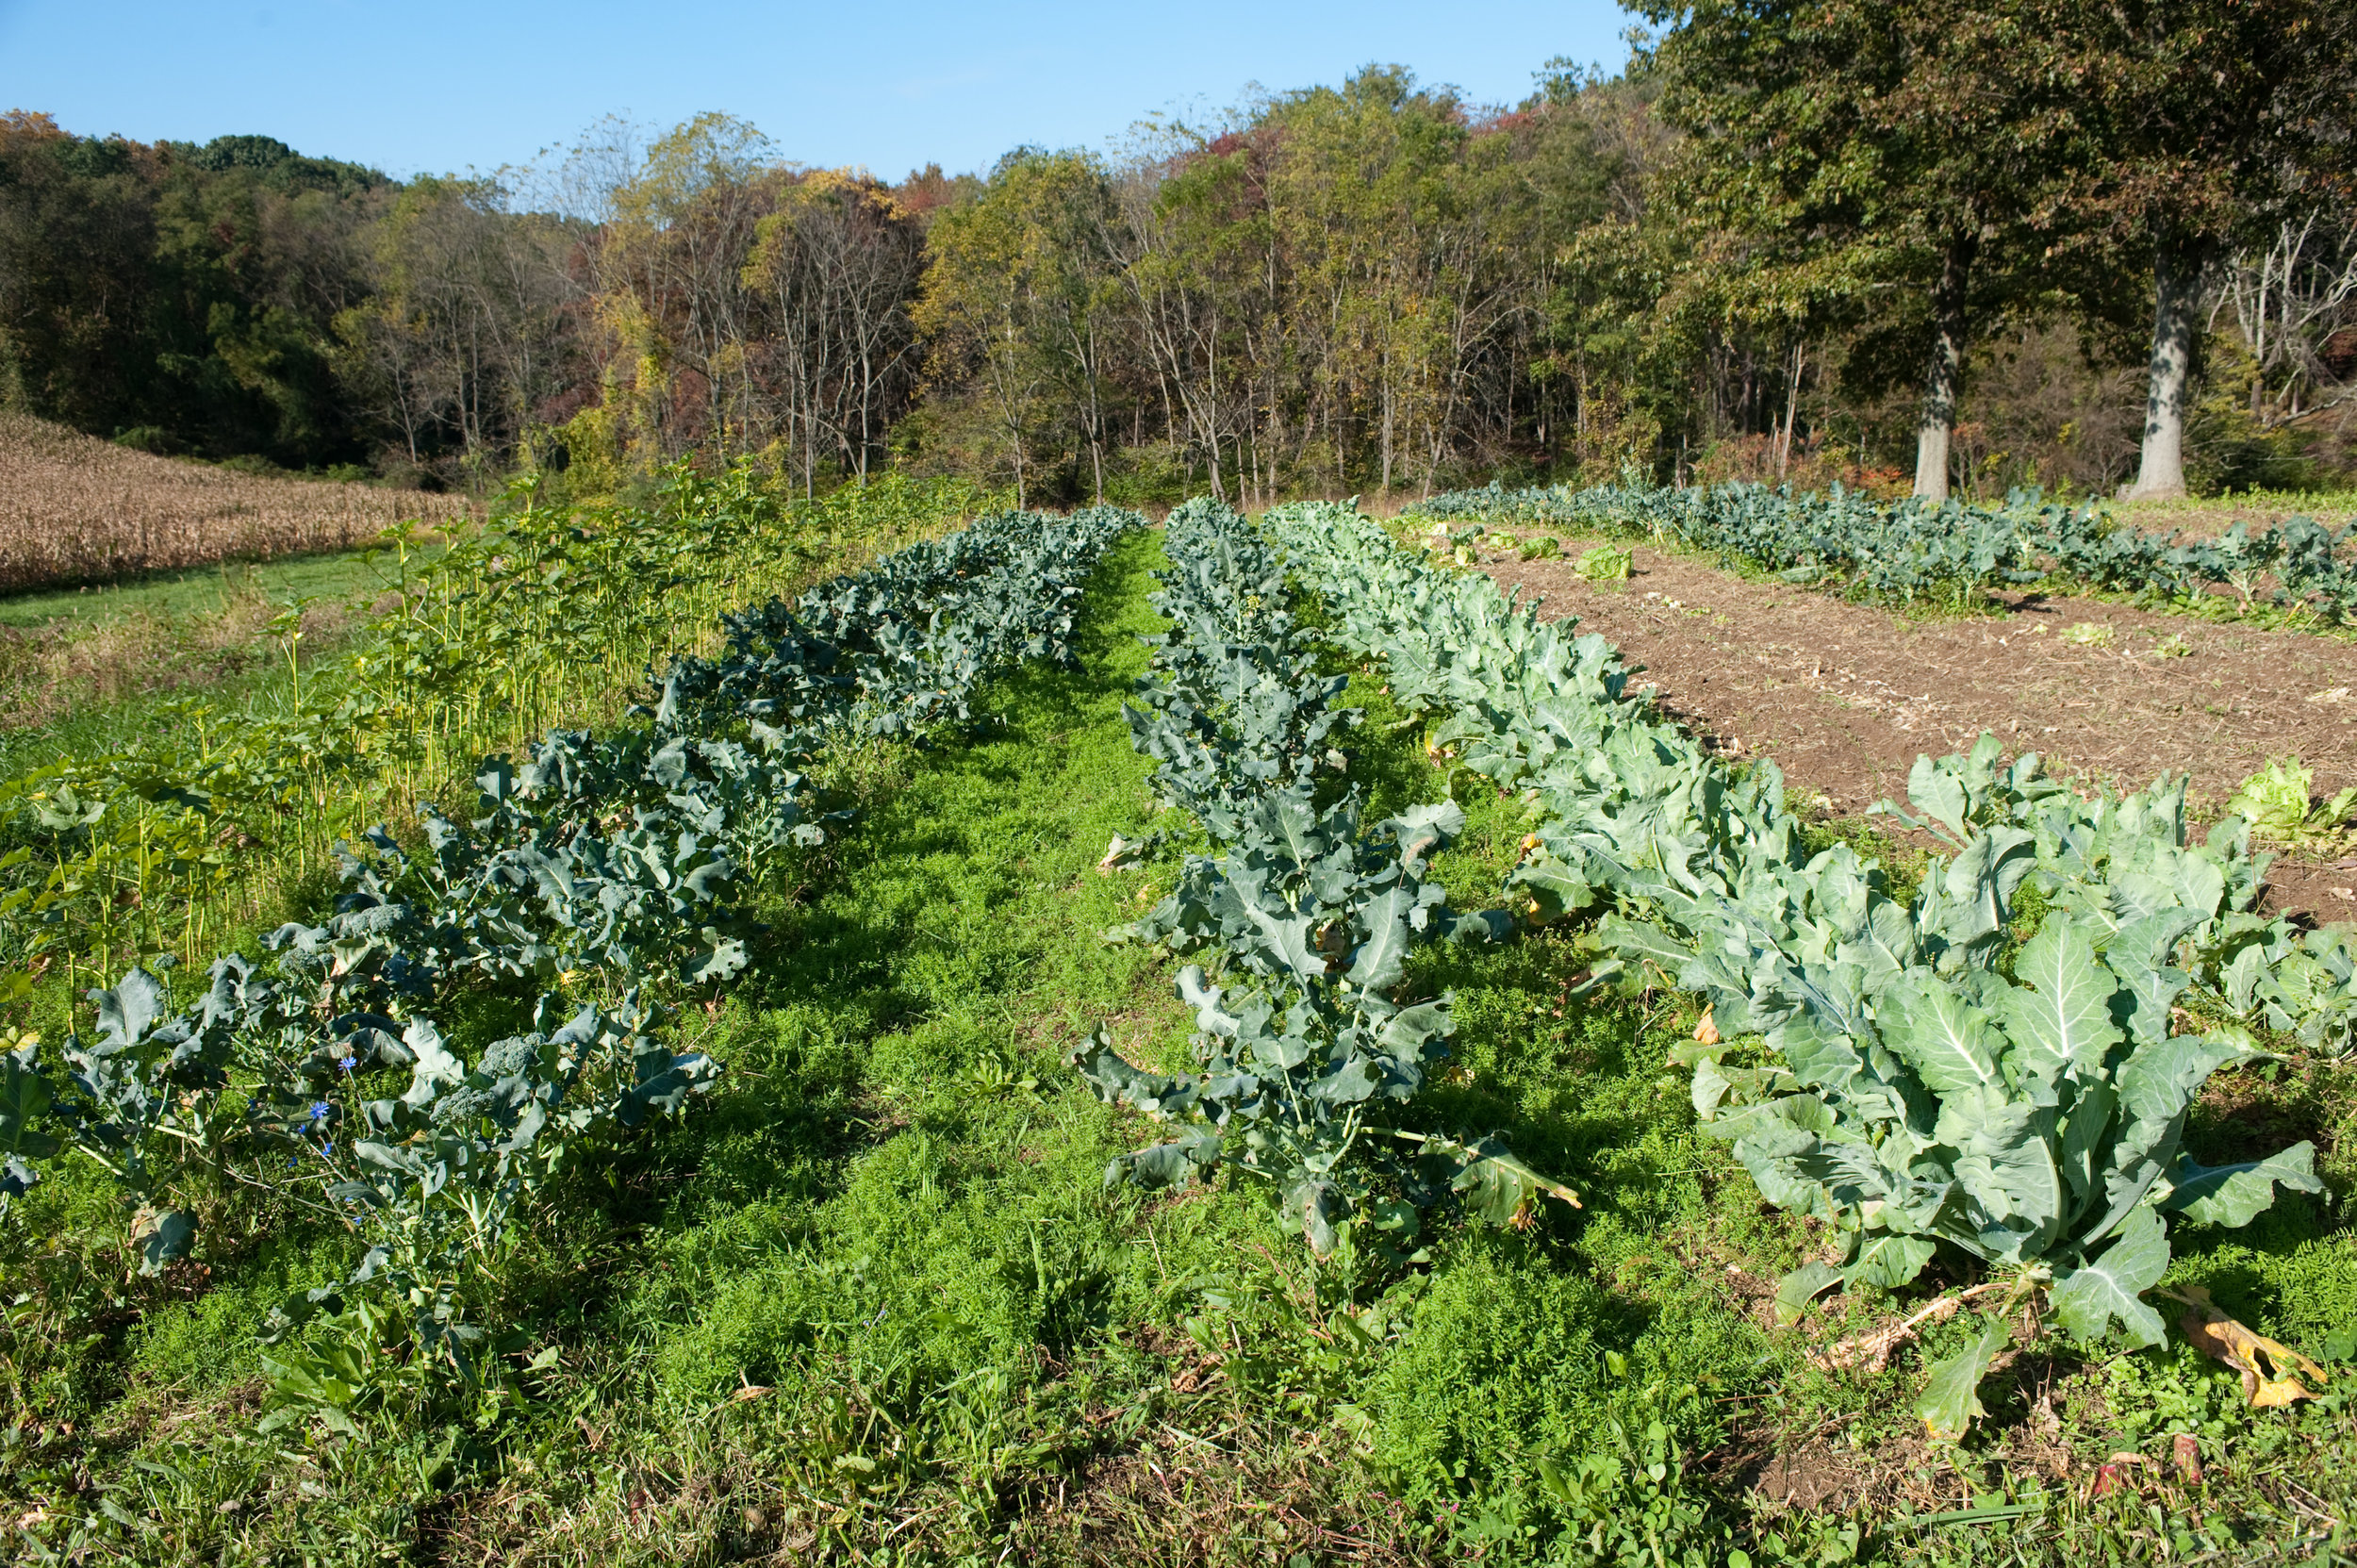 This image shows vegetables growing on a Maryland farm.  Photo by Edwin Remsberg.